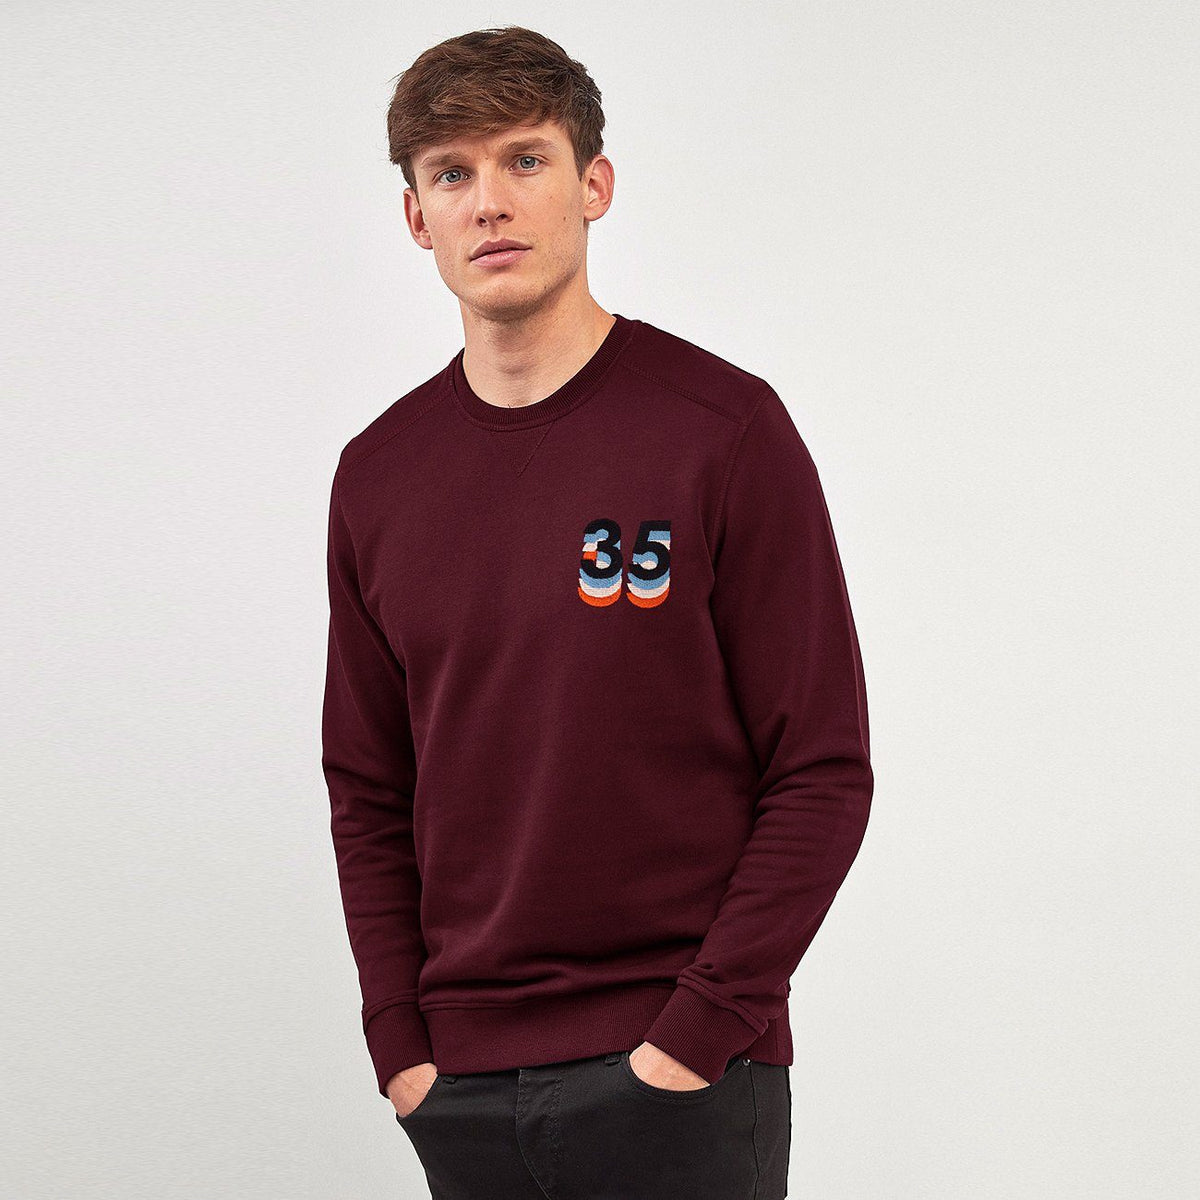 Men Premium Heavy Fleece V-Notch 3D Embroidered Sweatshirt (30264)